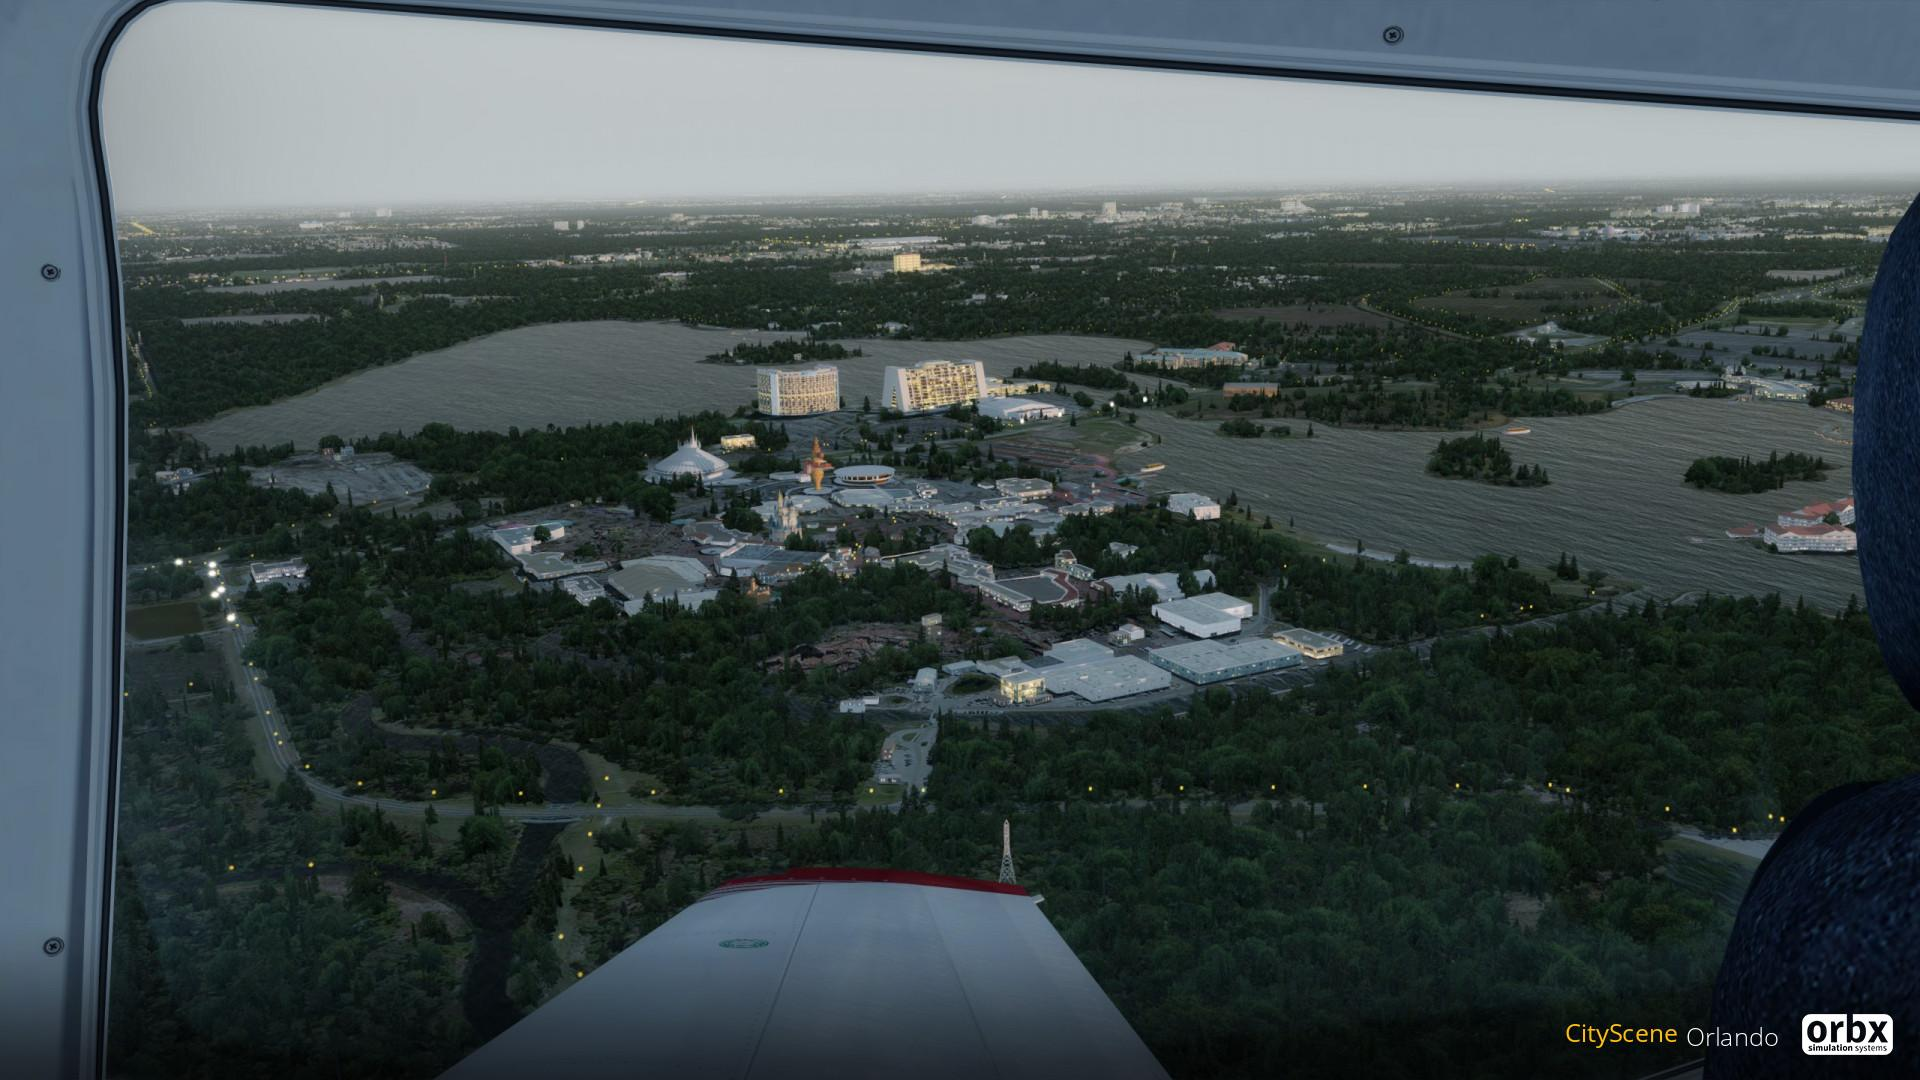 Introducing CityScene Orlando! - Preview Screenshots and Videos